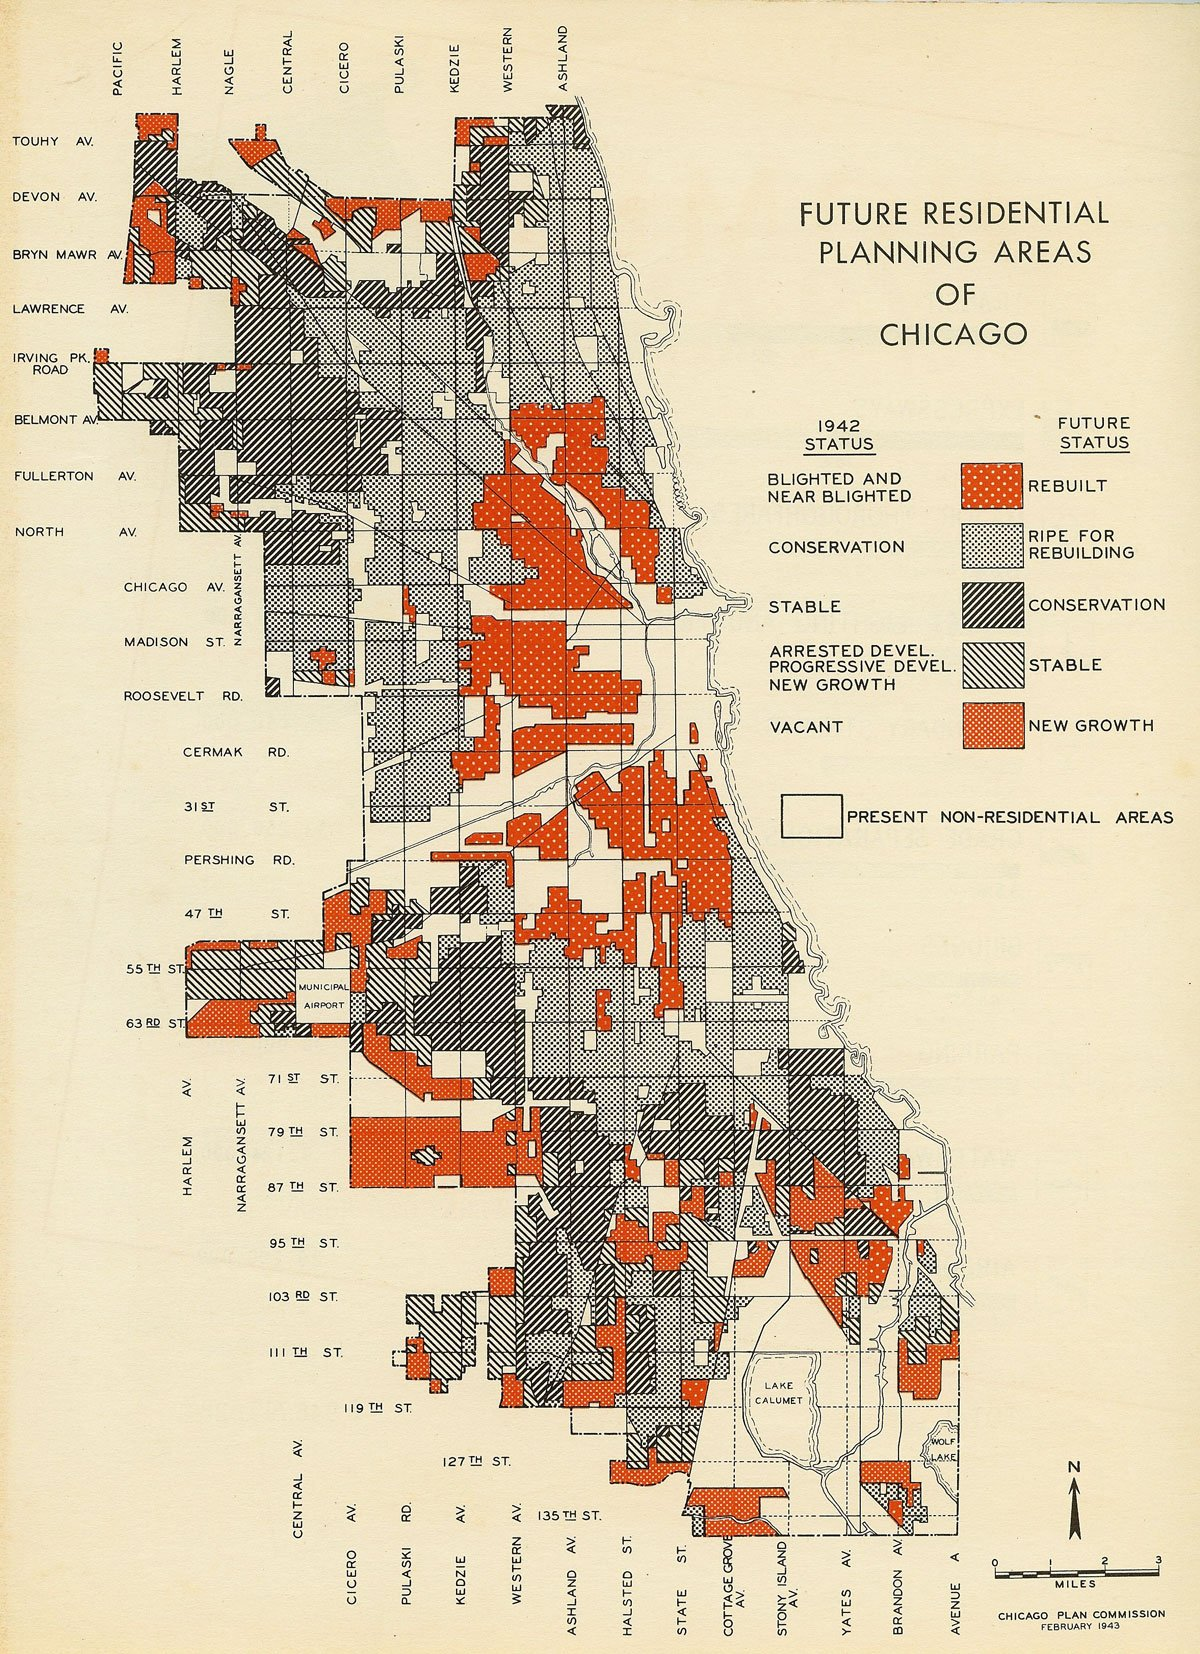 Future Residential Planning Areas of Chicago, 1954